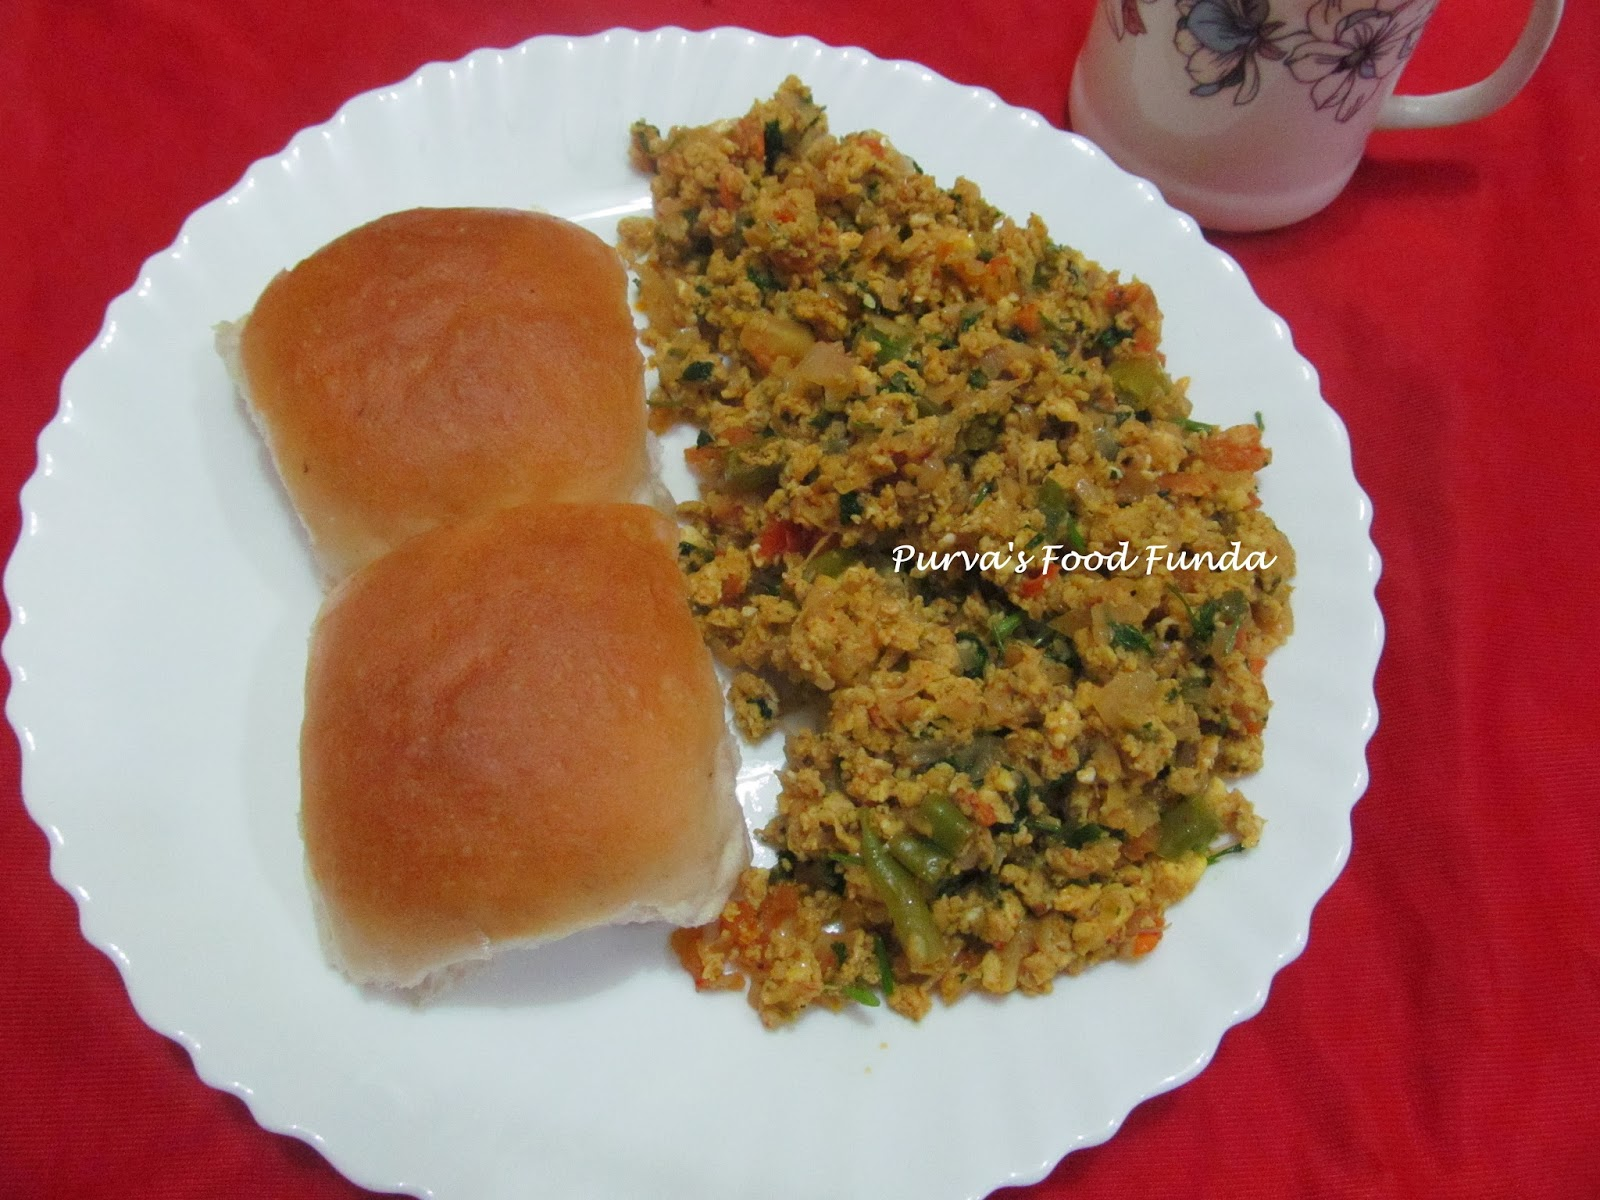 Food Funda: Bhurji - Pav (Mumbai Style Spicy Scrambled Egg)